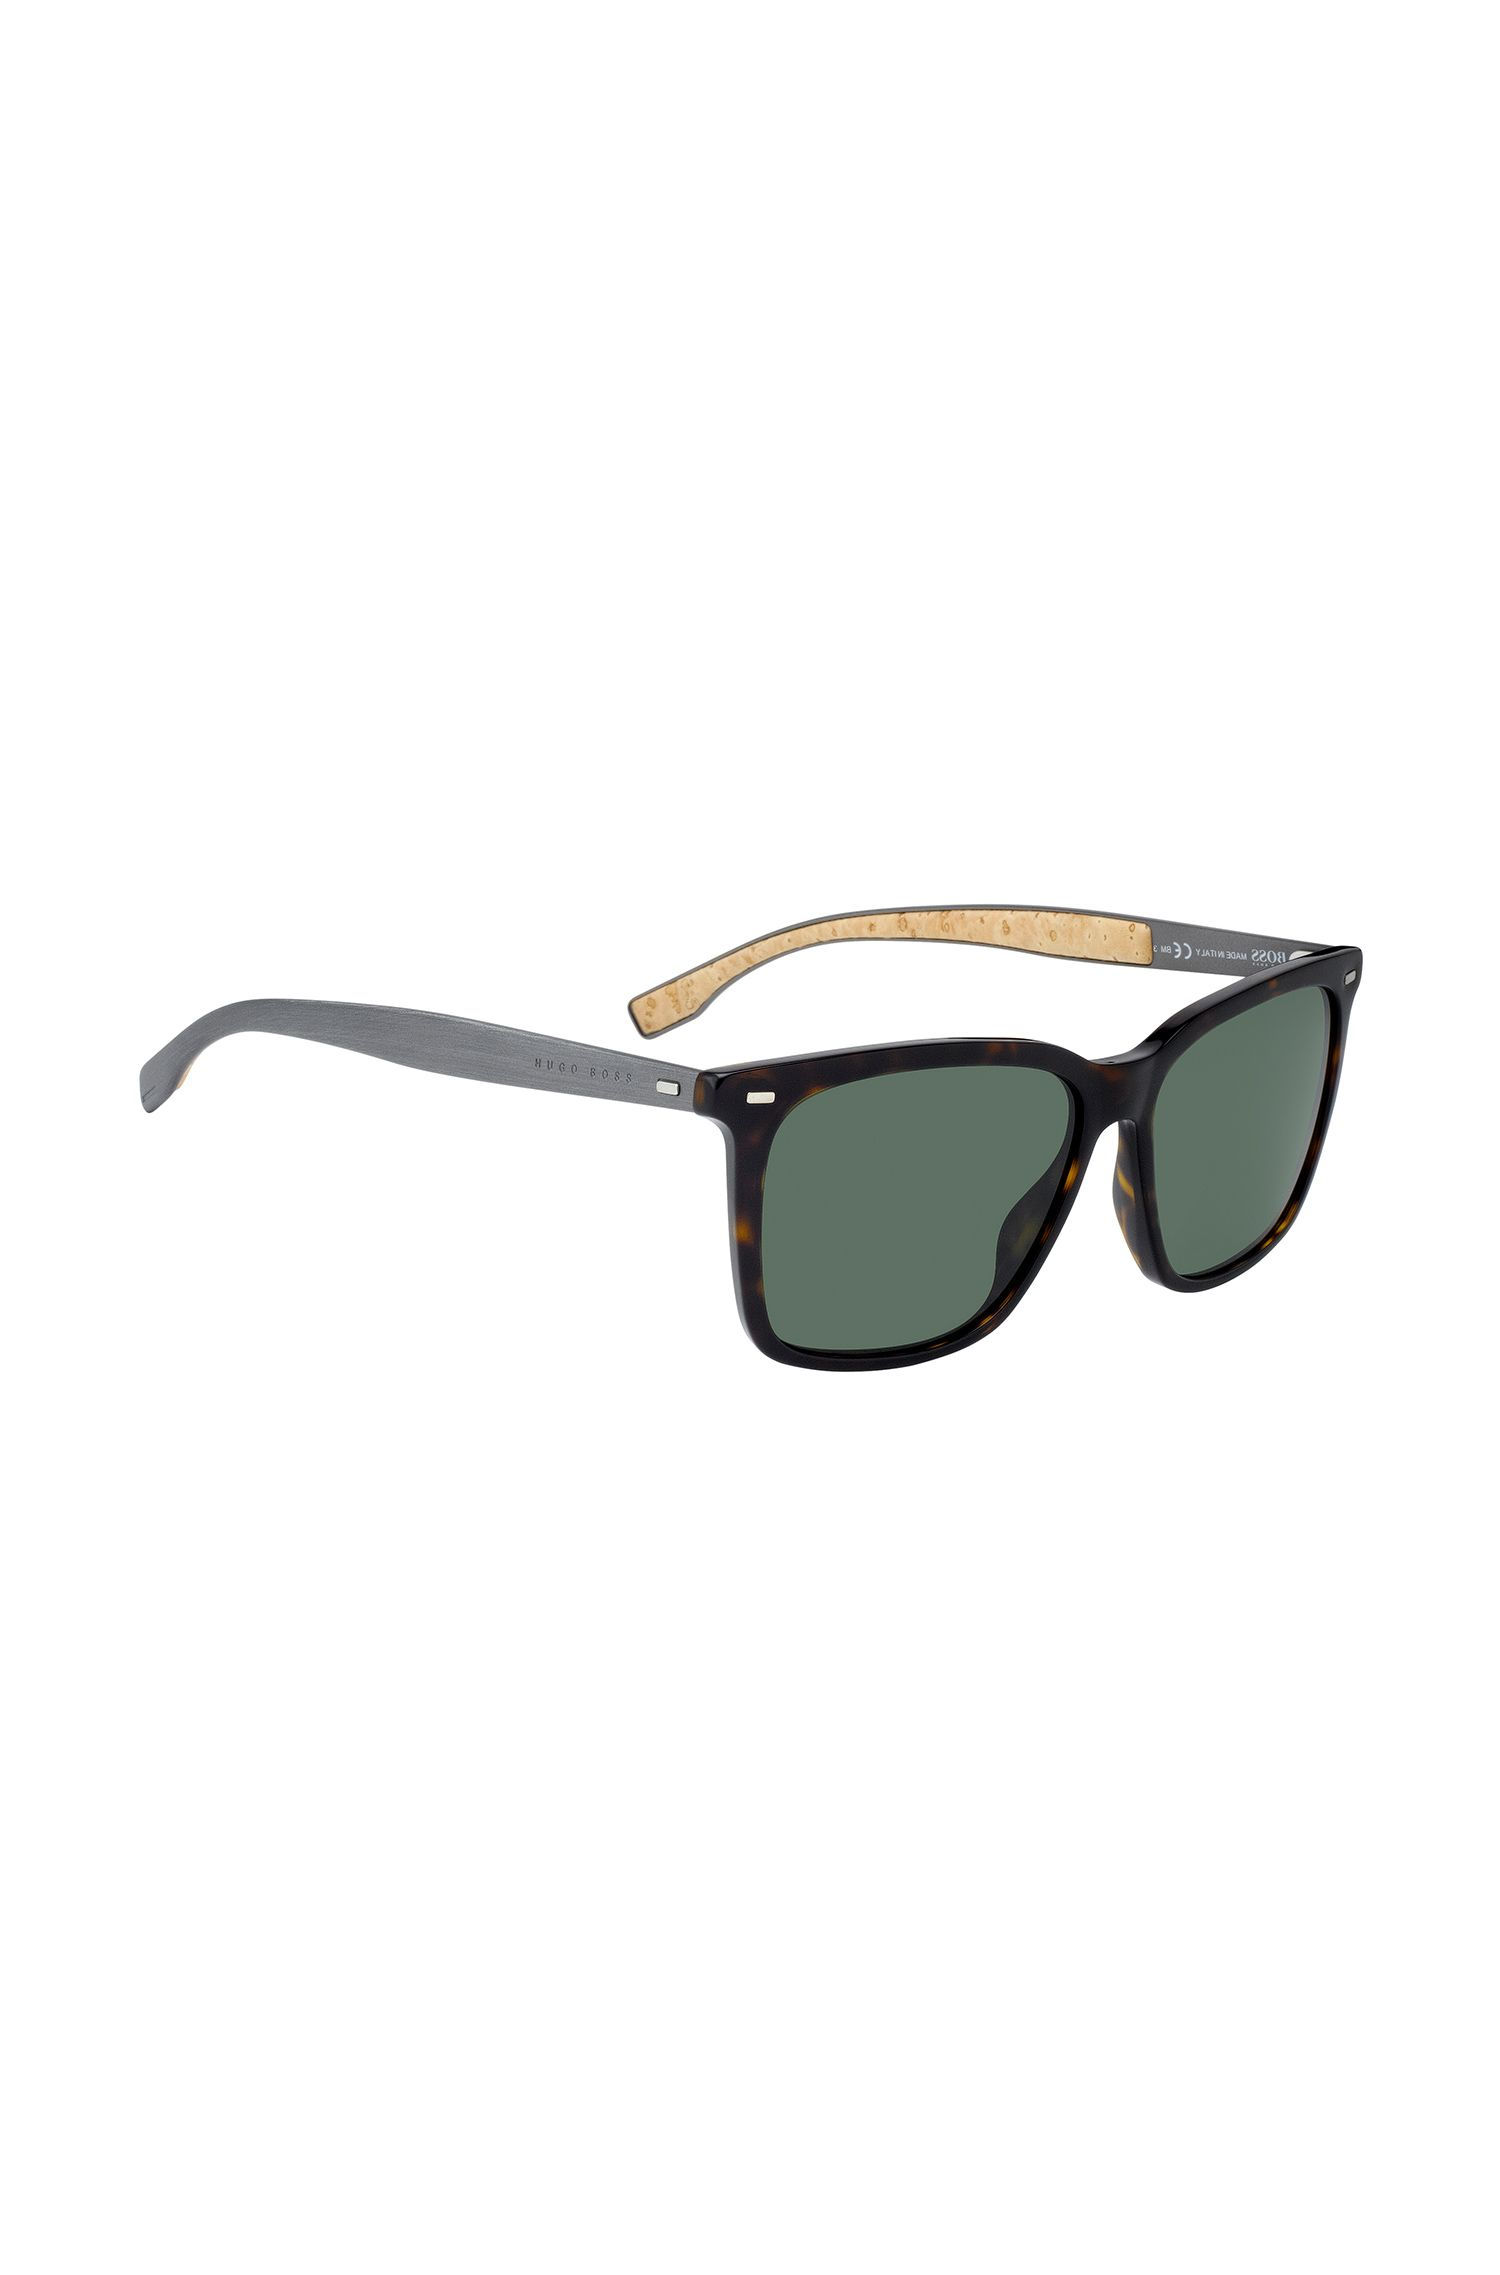 Tortoiseshell Acetate Rectangular Sunglasses | BOSS 08883S, Assorted-Pre-Pack